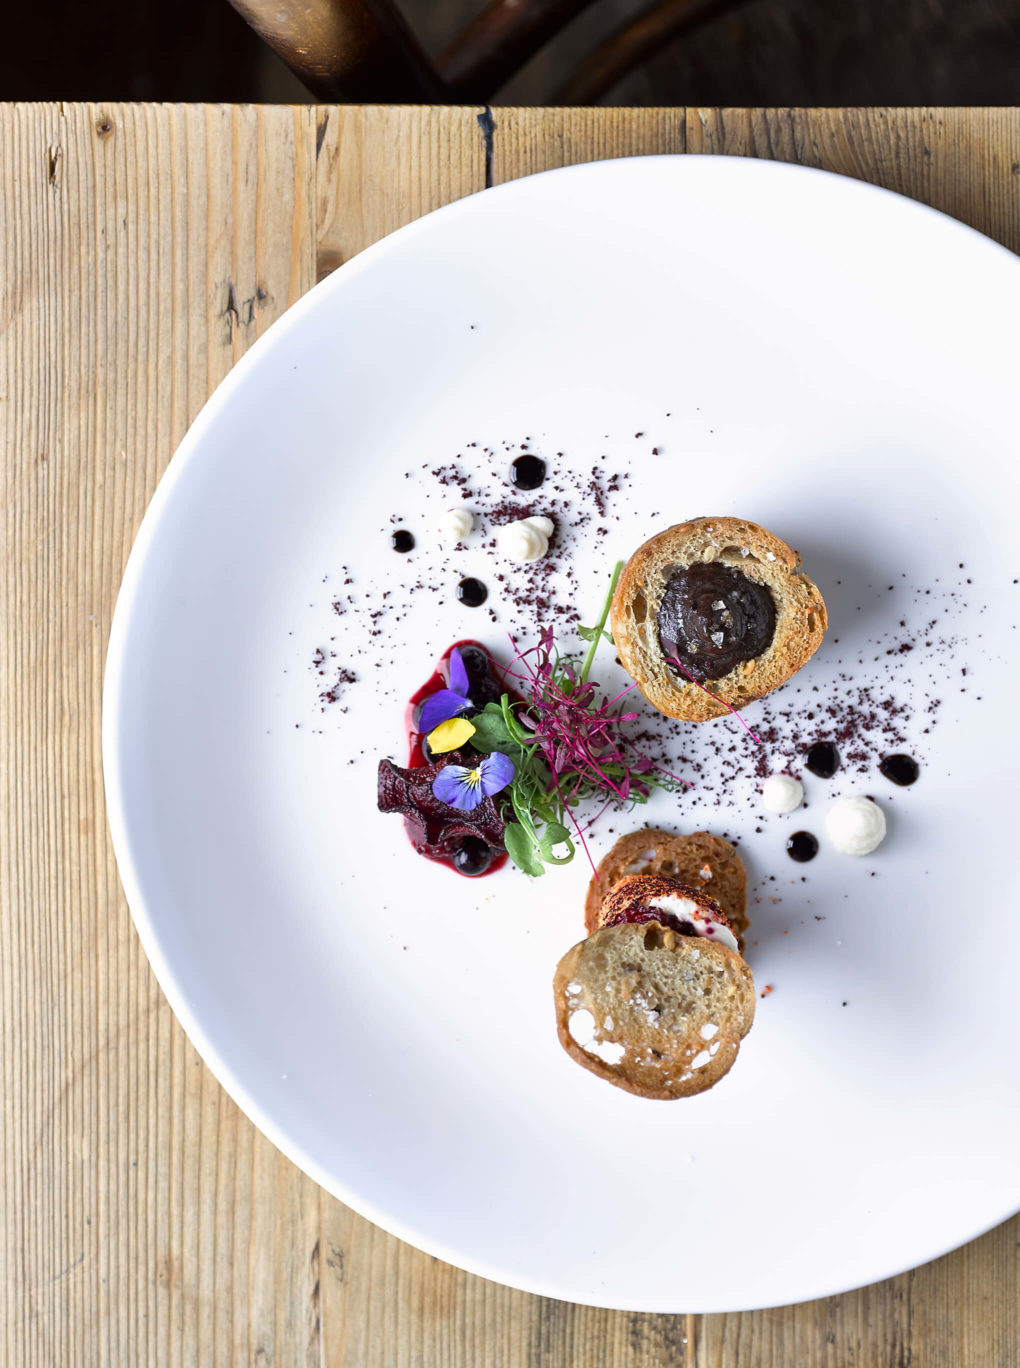 Goats Cheese, Black Pudding and Berries